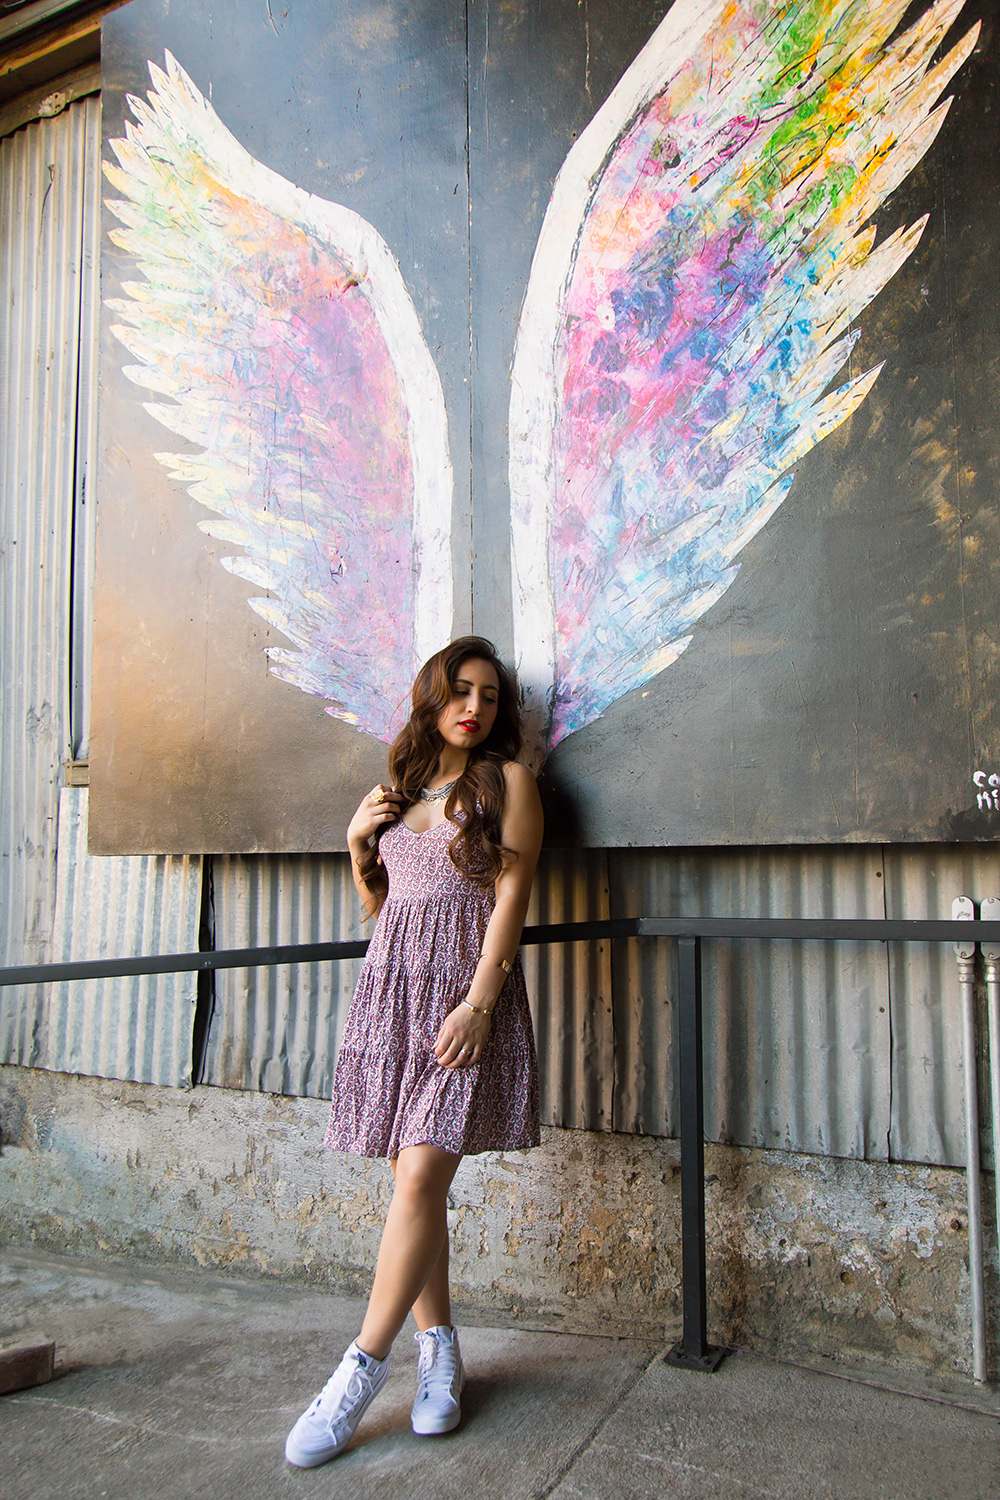 Angel wing paintings by Collette Miller can be found in the Arts District in downtown Los Angeles.